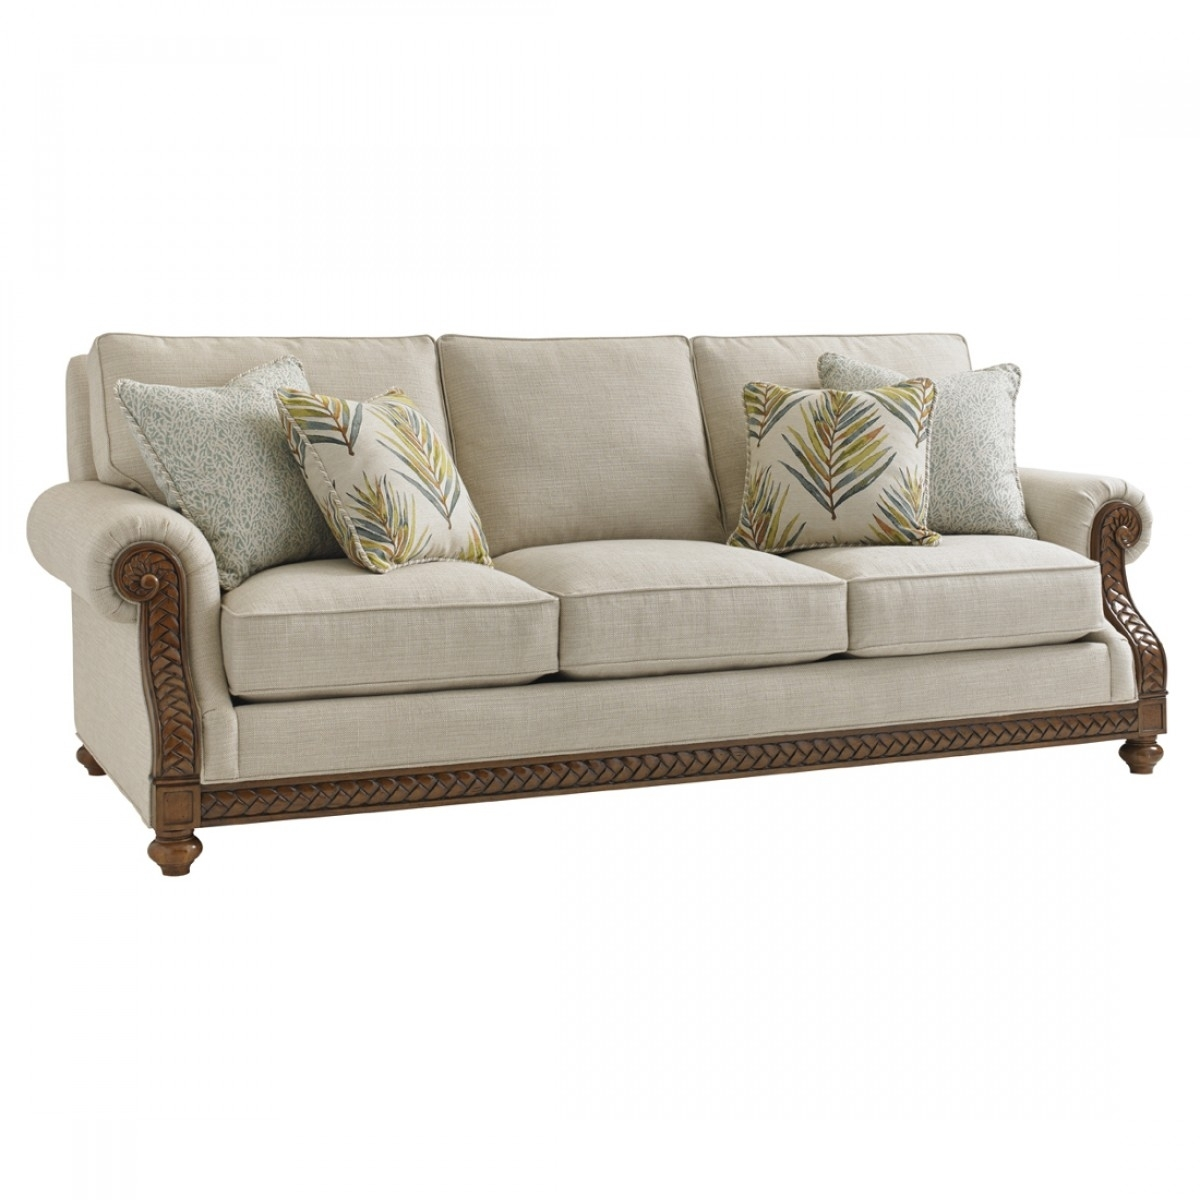 Tommy Bahama Home Bali Hai Shoreline Sofa Pertaining To Marcus Oyster 6 Piece Sectionals With Power Headrest And Usb (View 6 of 25)